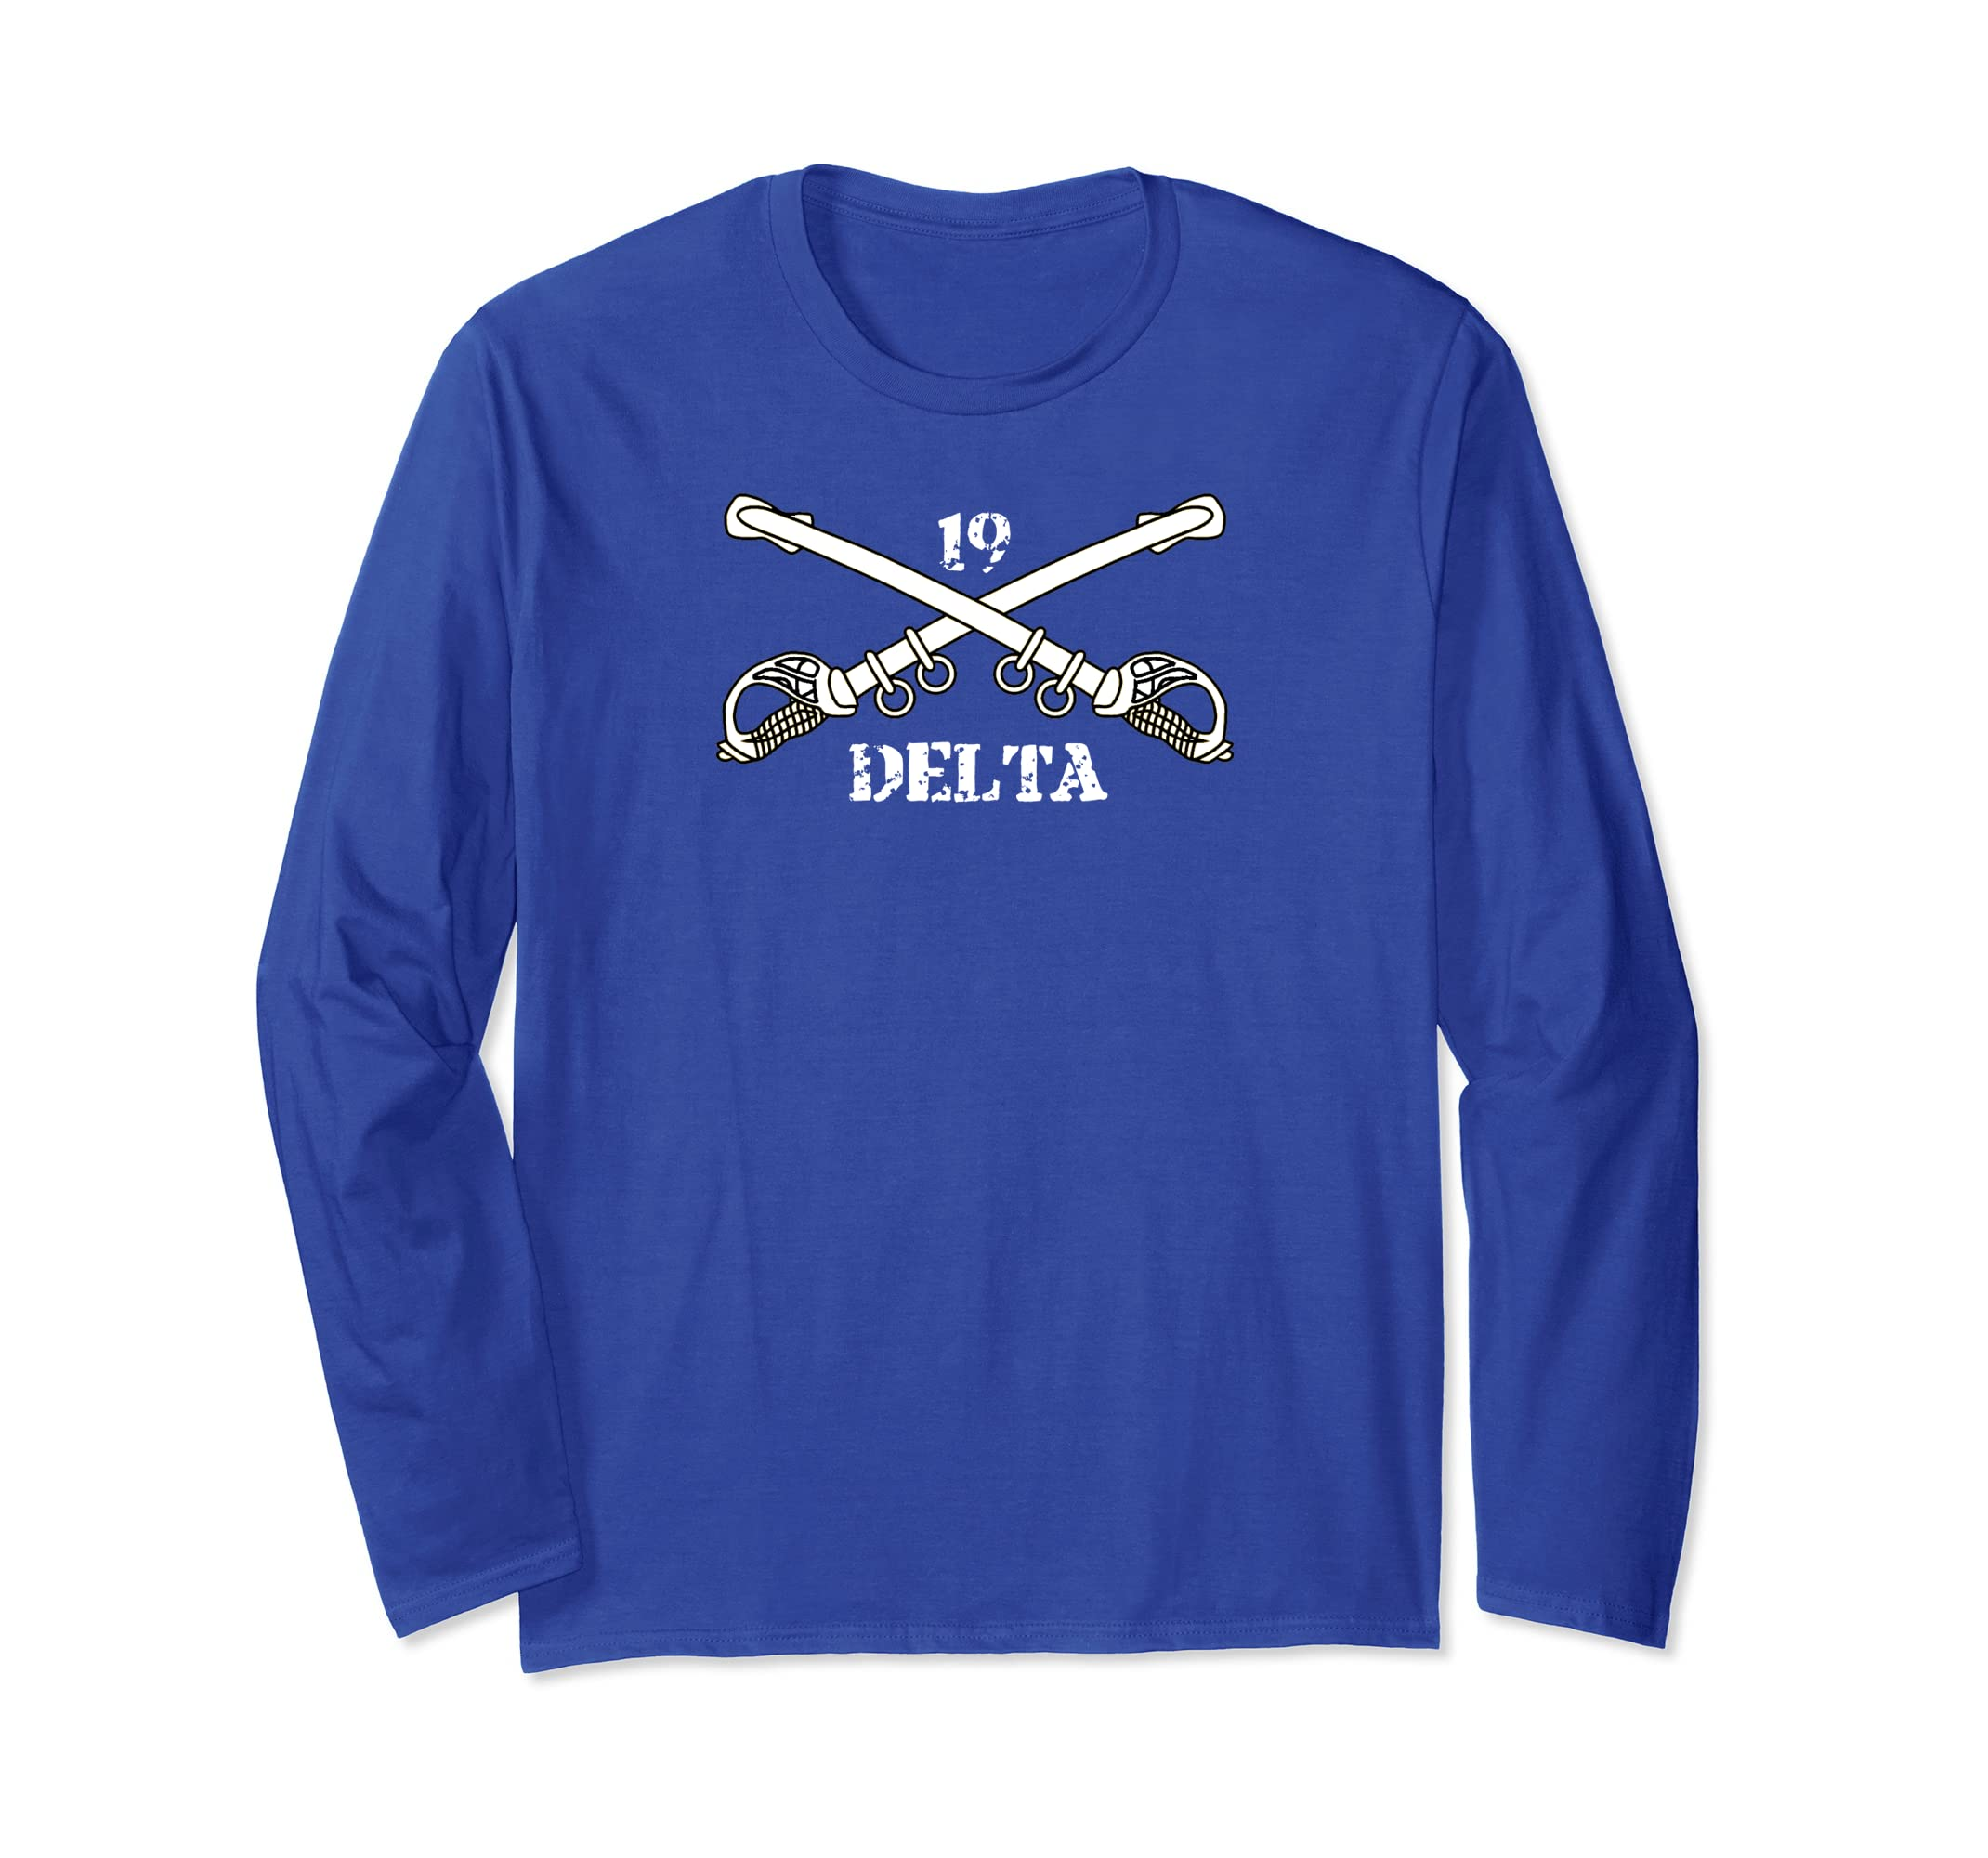 19 delta cavalry scout long sleeve shirt-azvn